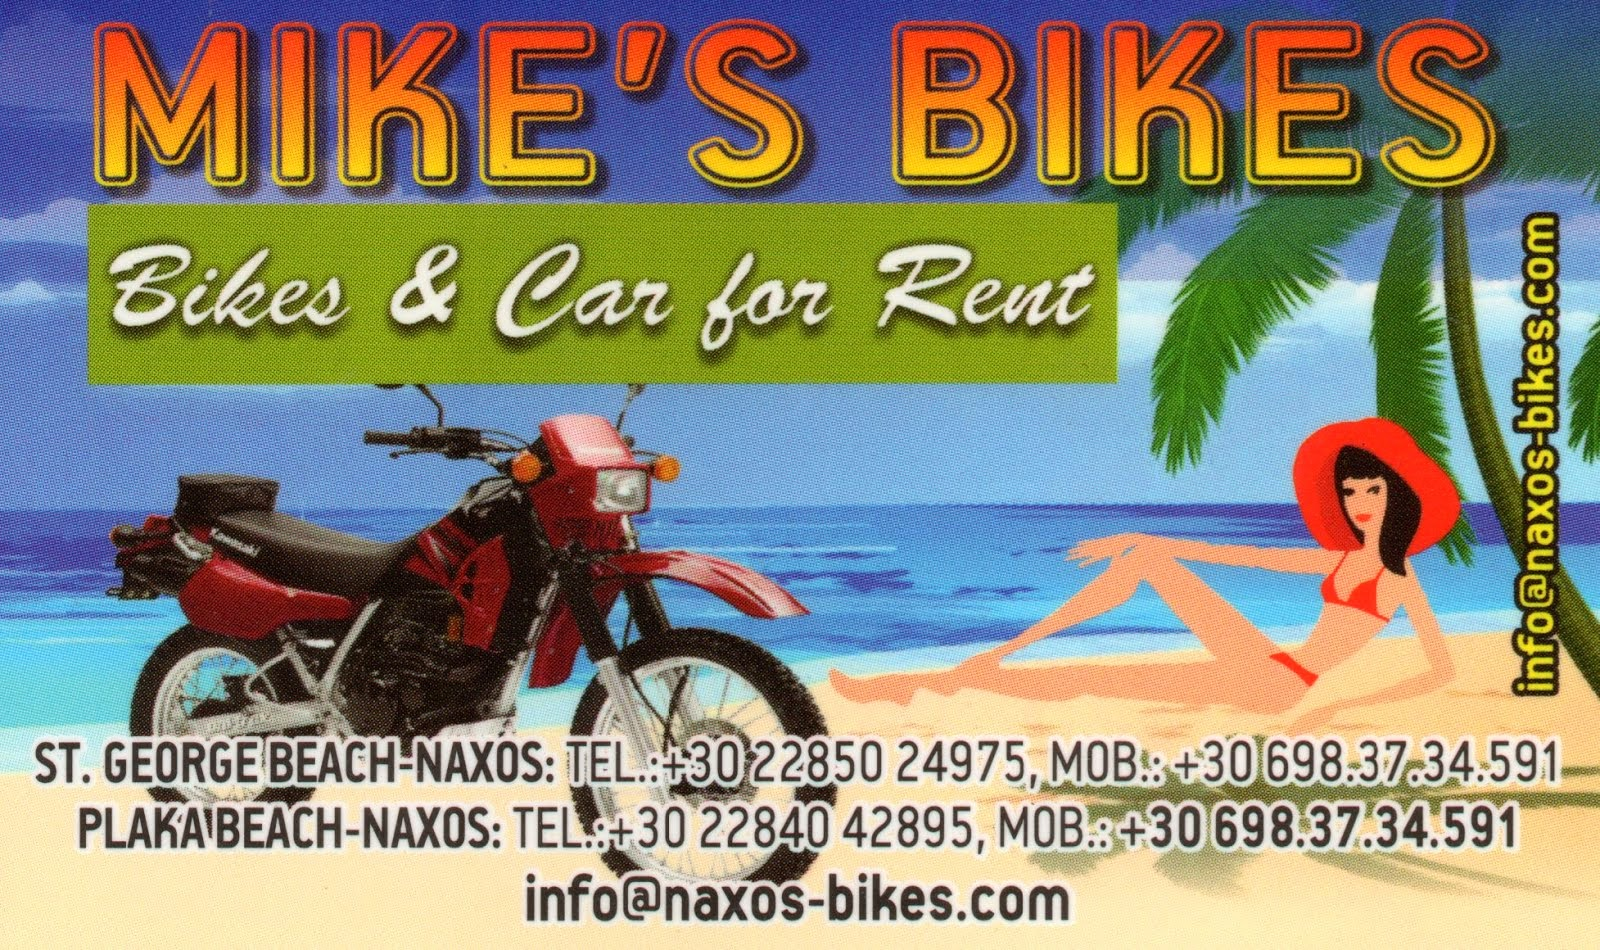 MIKE'S BIKES FOR RENT